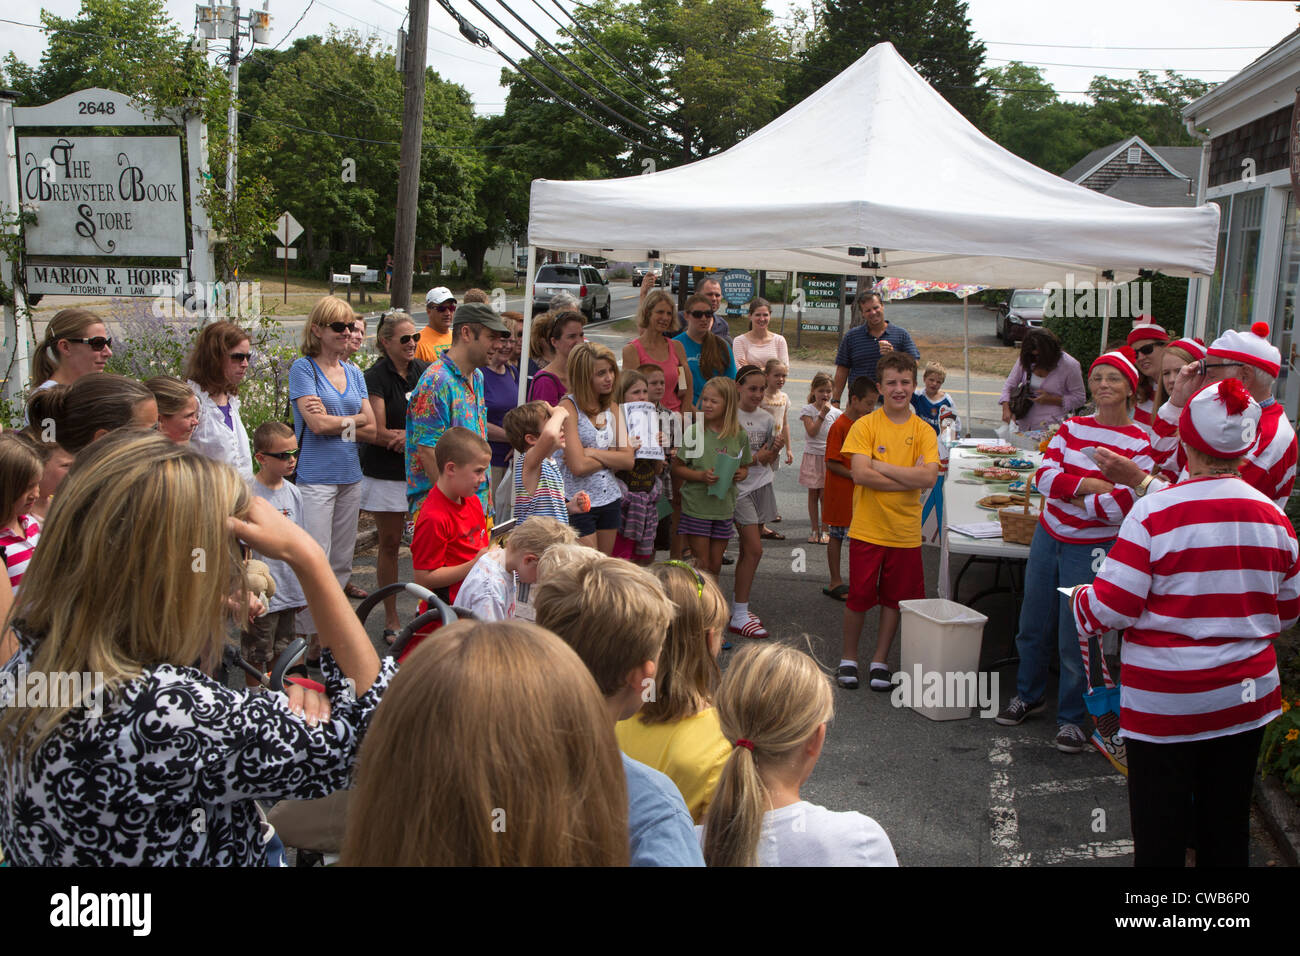 Brewster, Massachusetts - Costumed volunteers hand out prizes to children during a bookstore's 'Where's - Stock Image